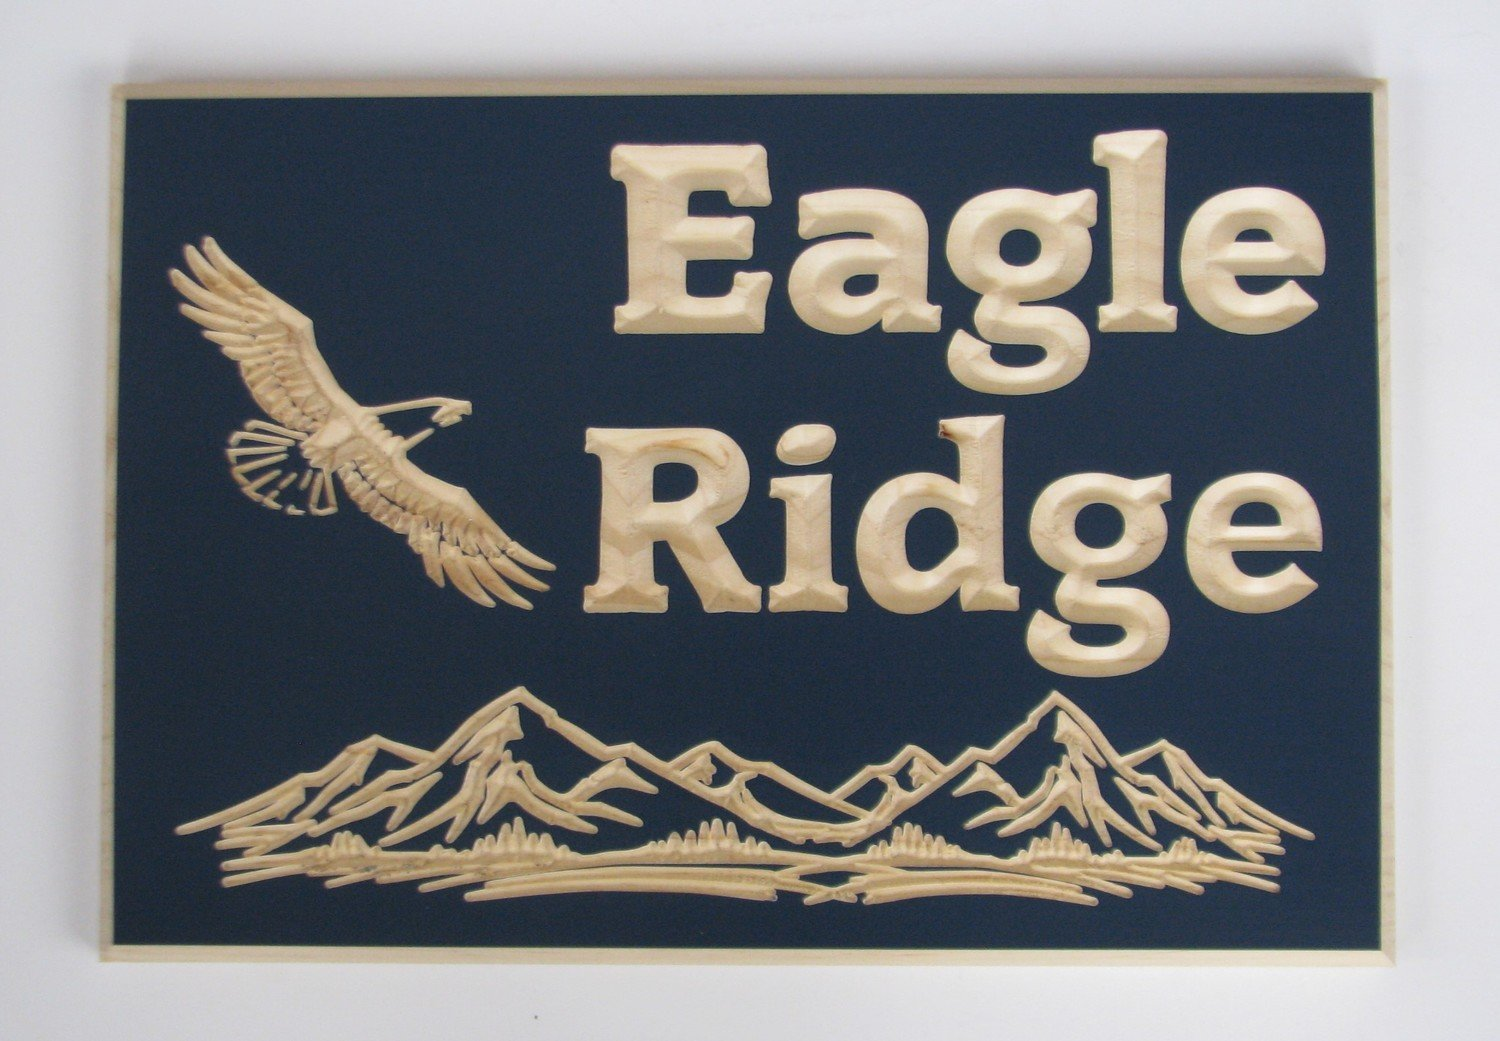 Custom Carved Pine Sign with Carved Eagle and Mountains